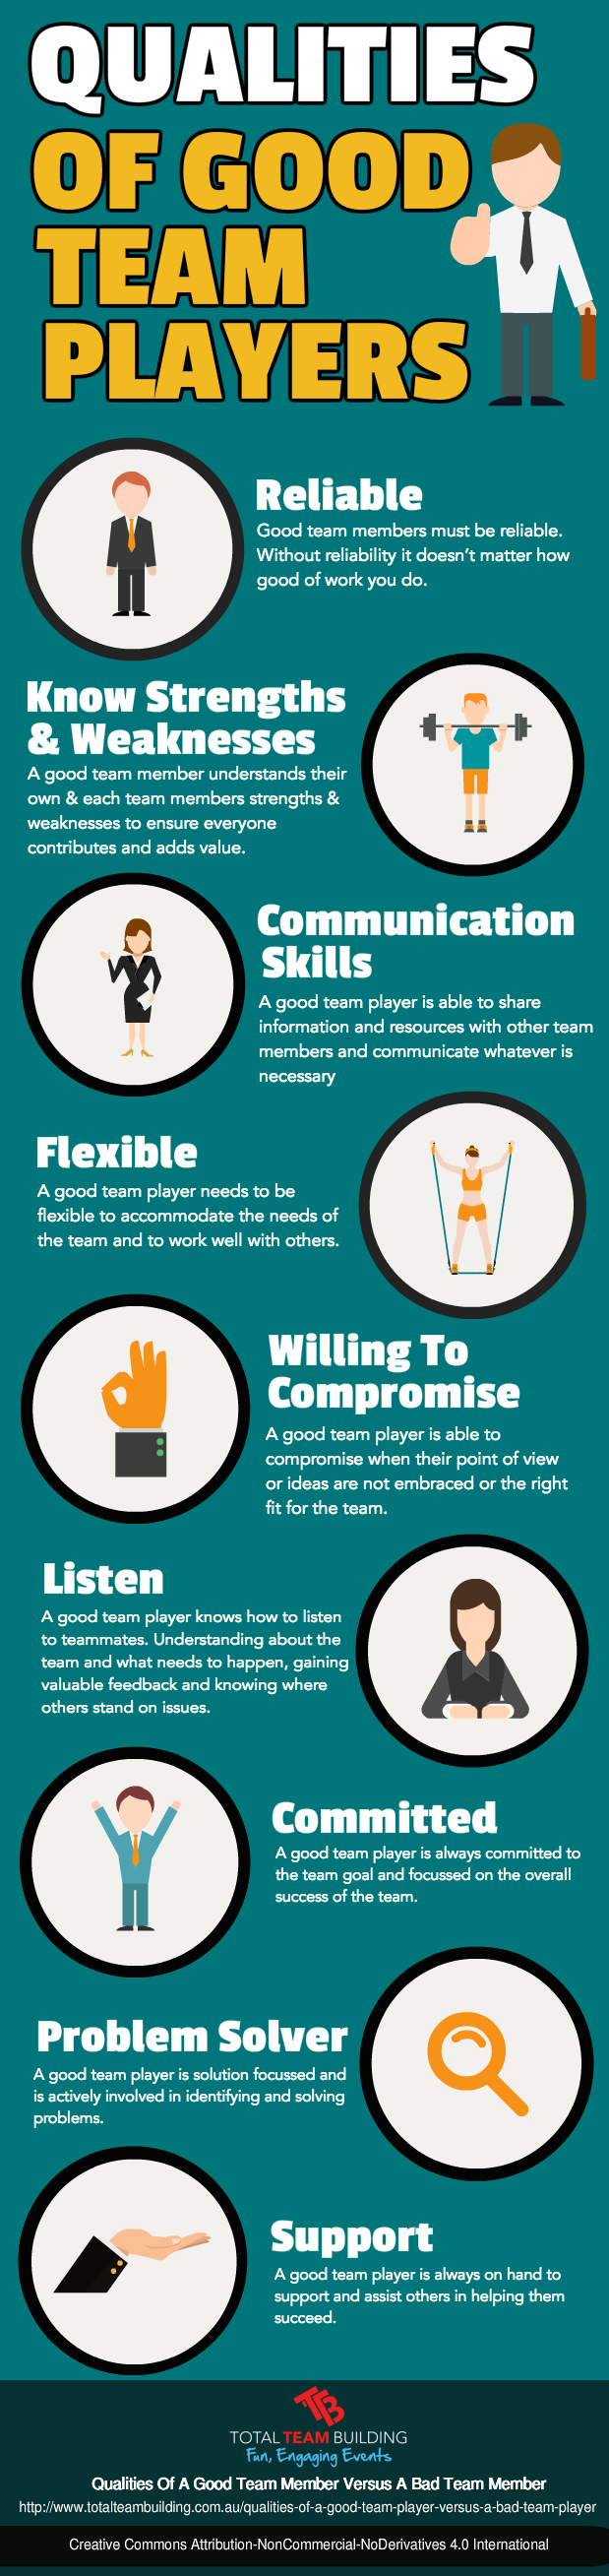 qualities of good team player infographic